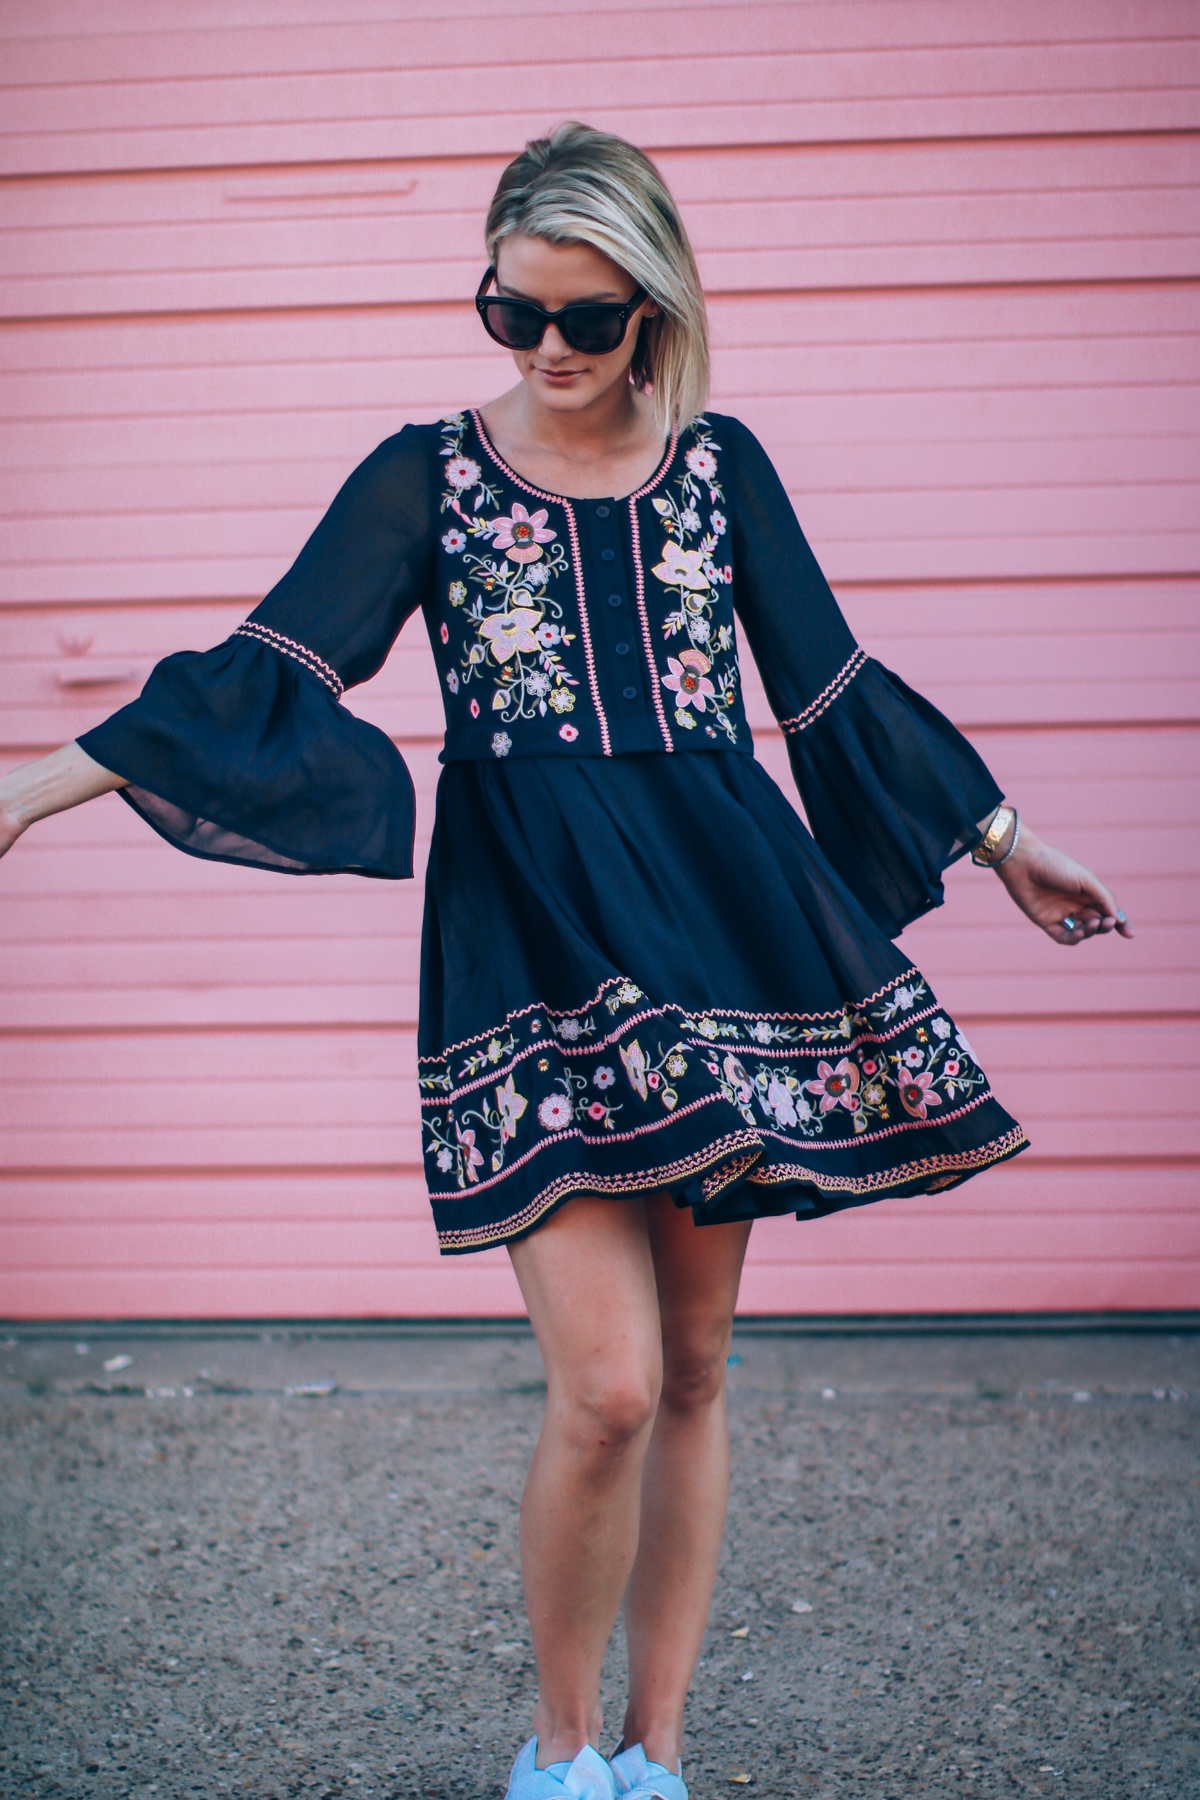 sneakers-and-dress-outfit